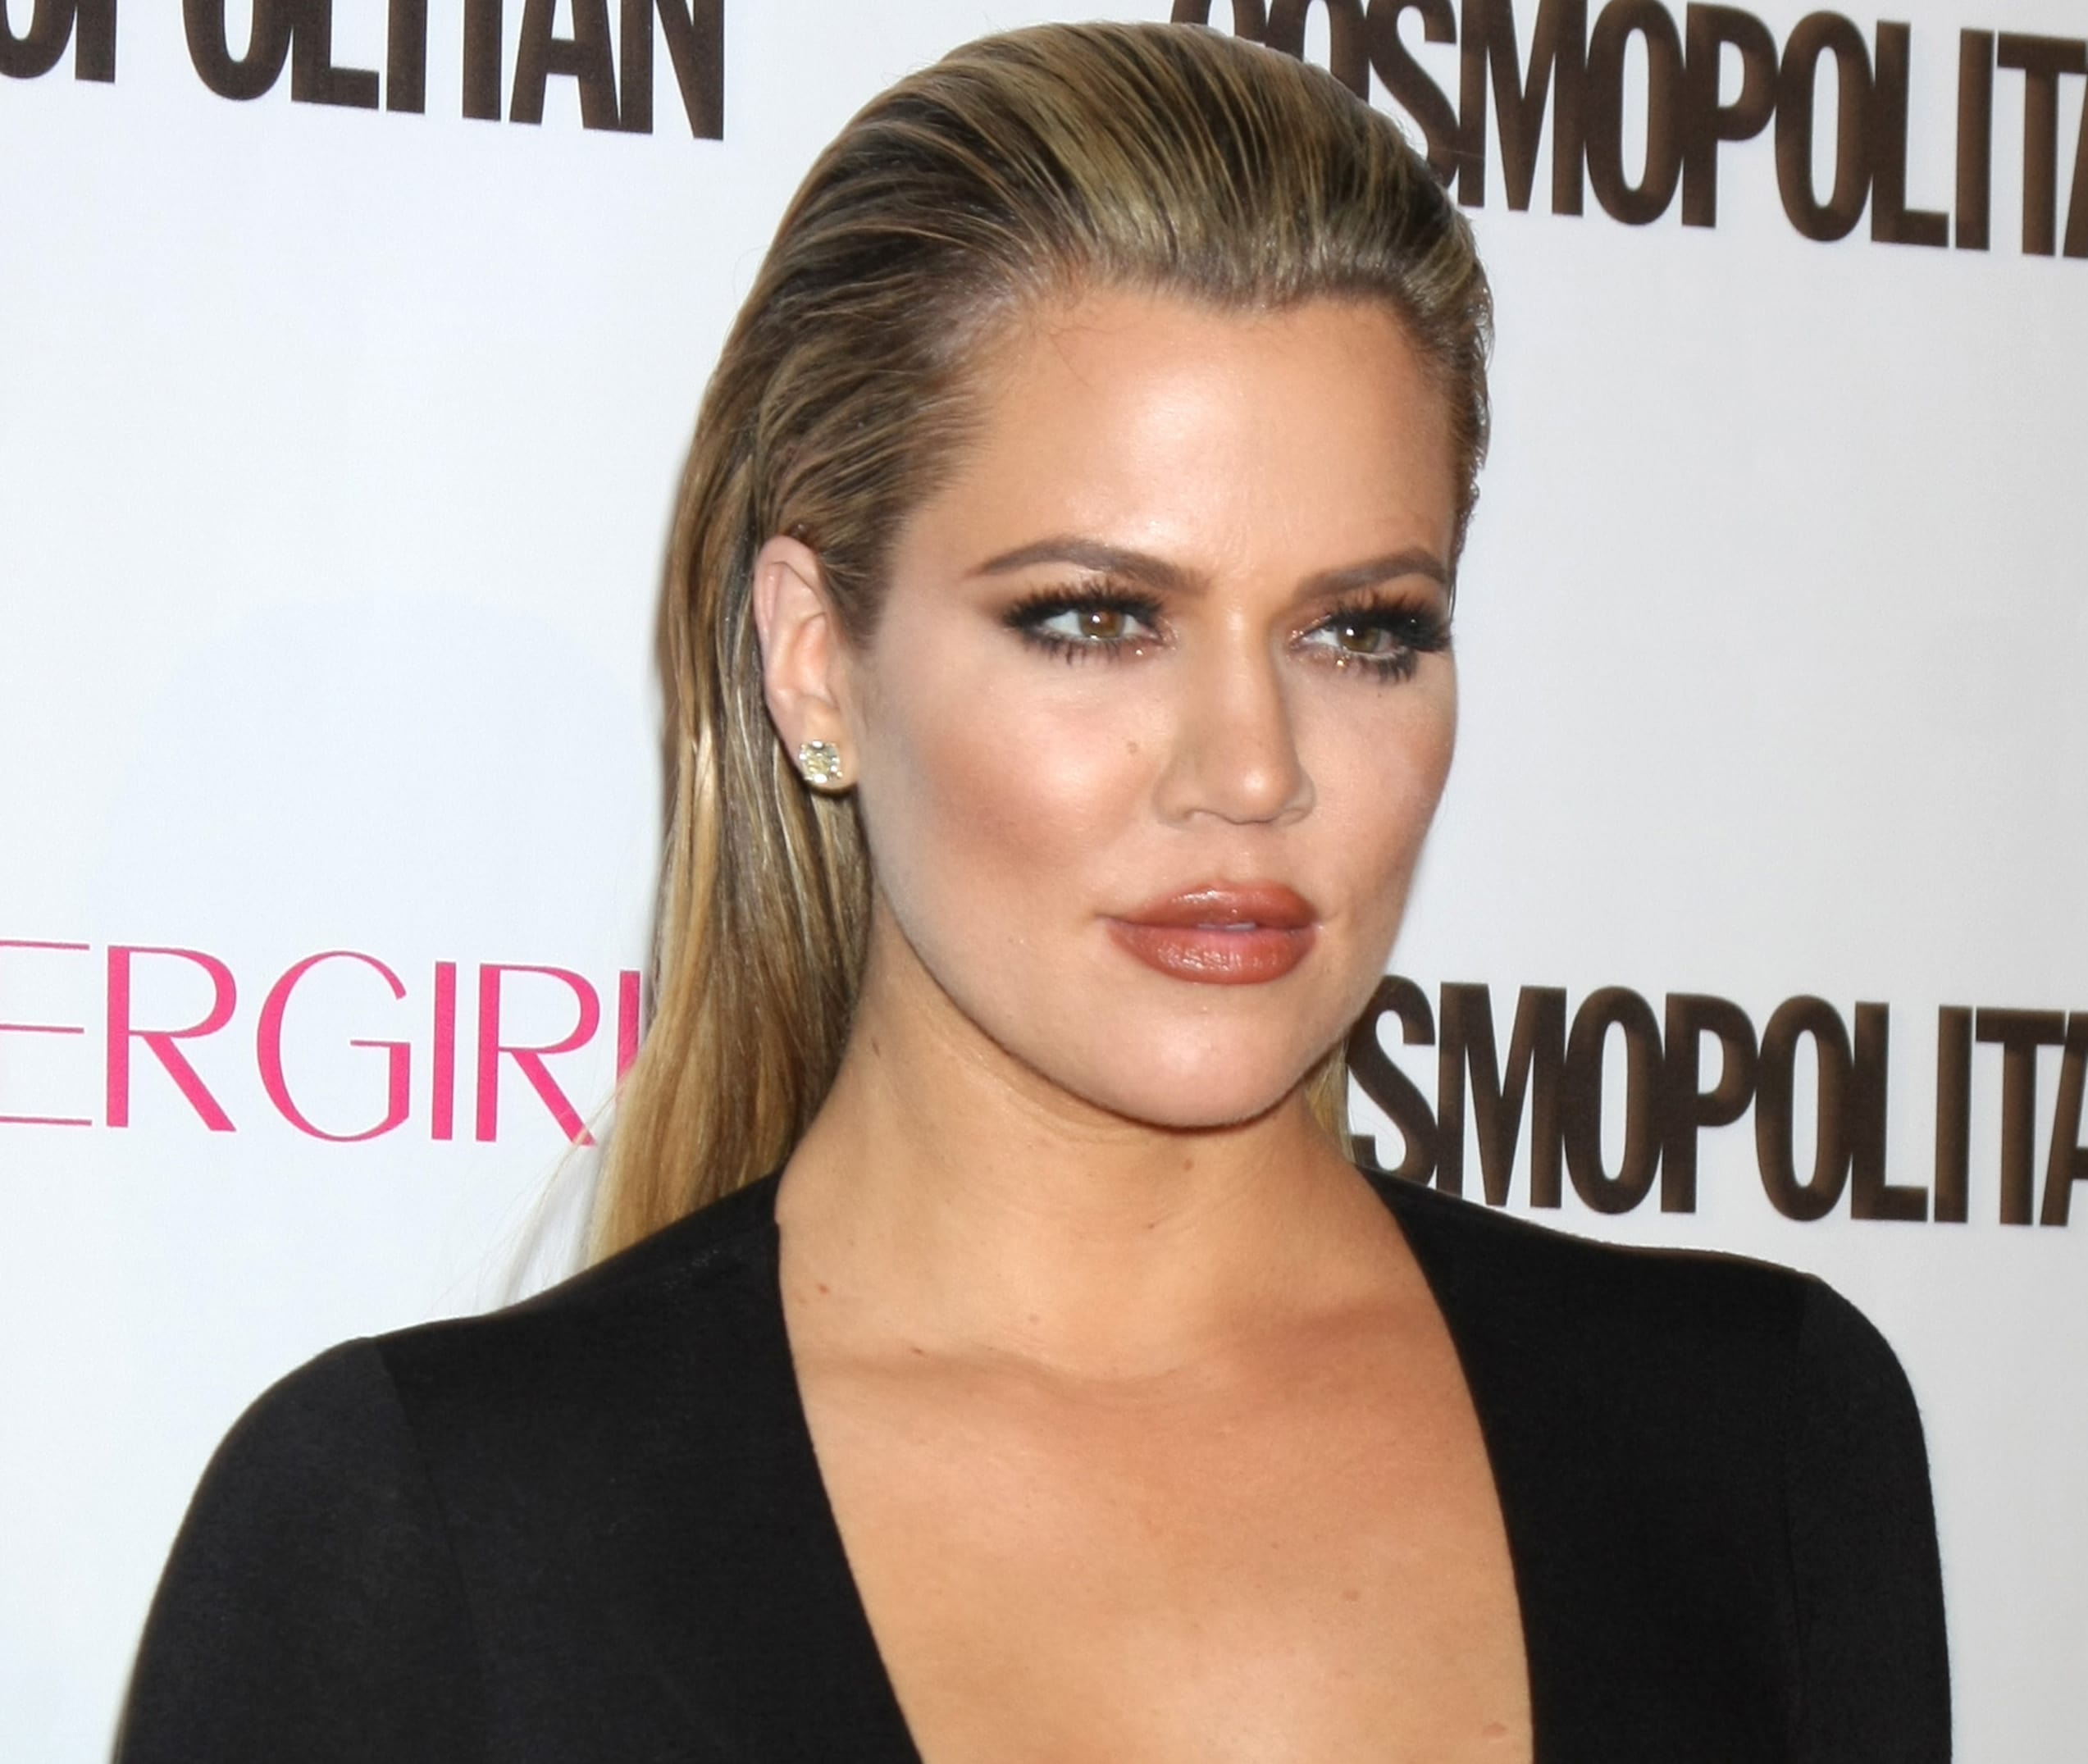 70a615b7e42 Khloe Kardashian Returns to App, Thanks